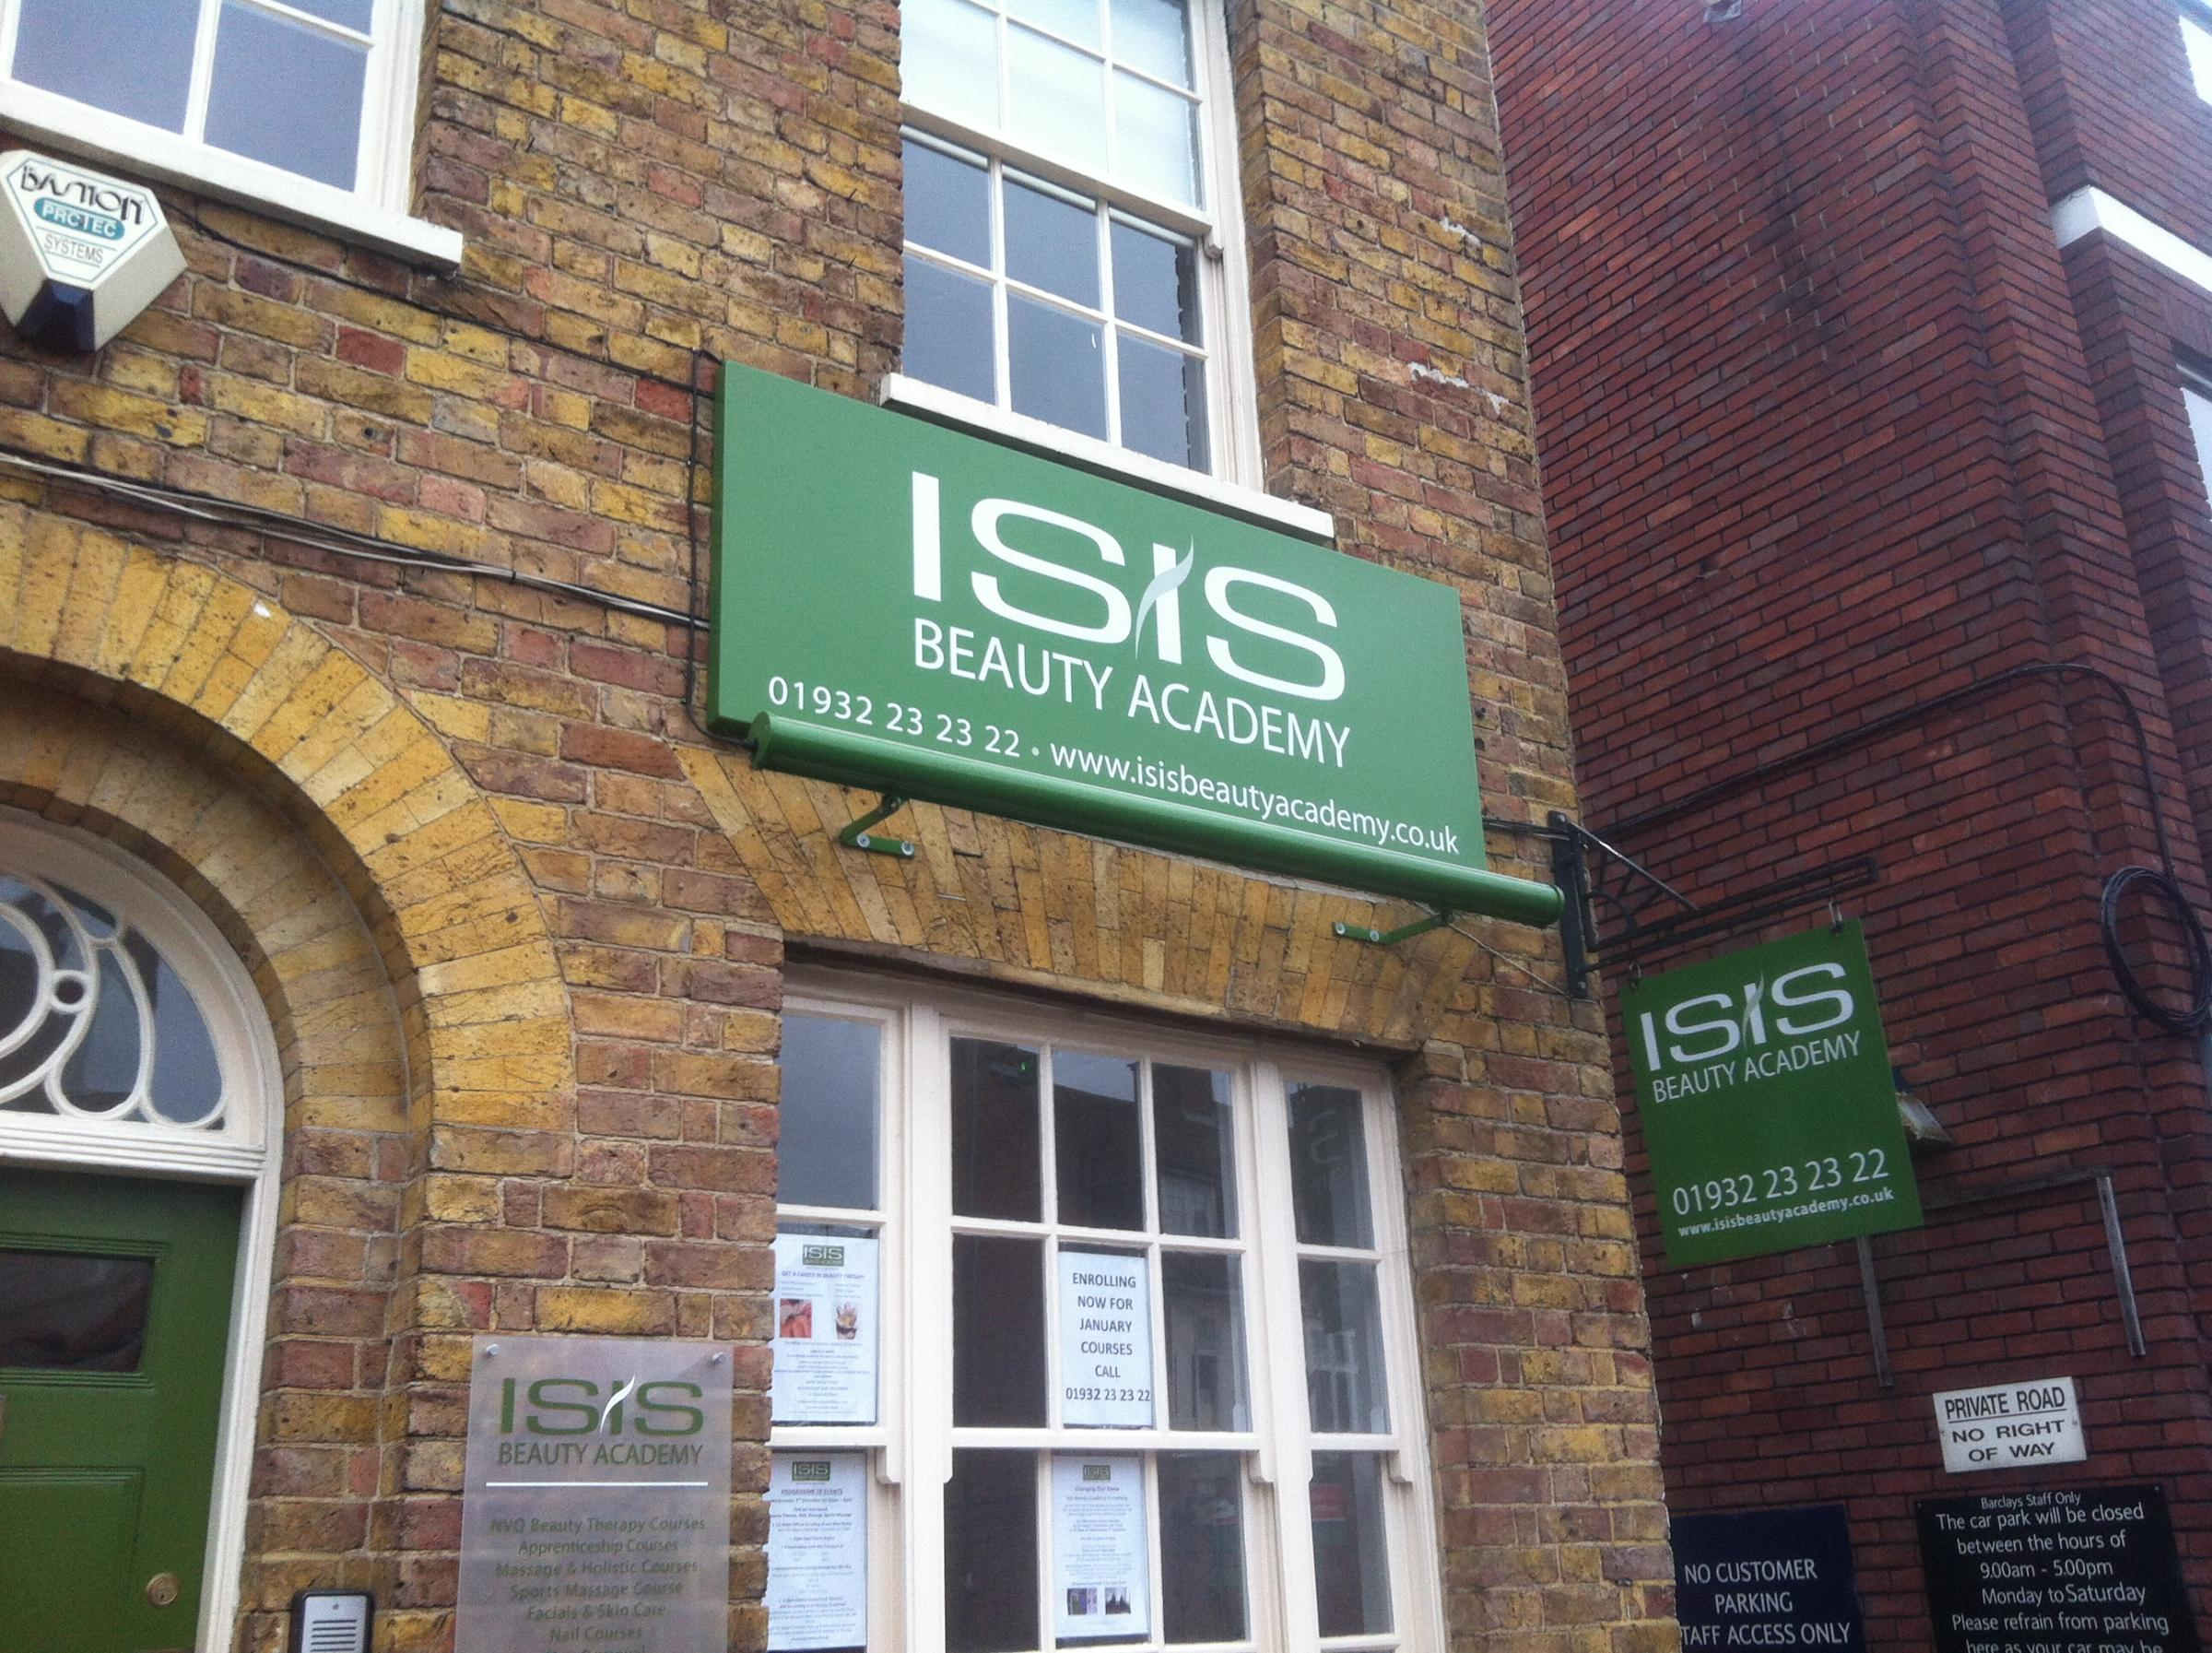 The ISIS Beauty Academy on Church Street in Walton has received a barrage of abuse in recent months